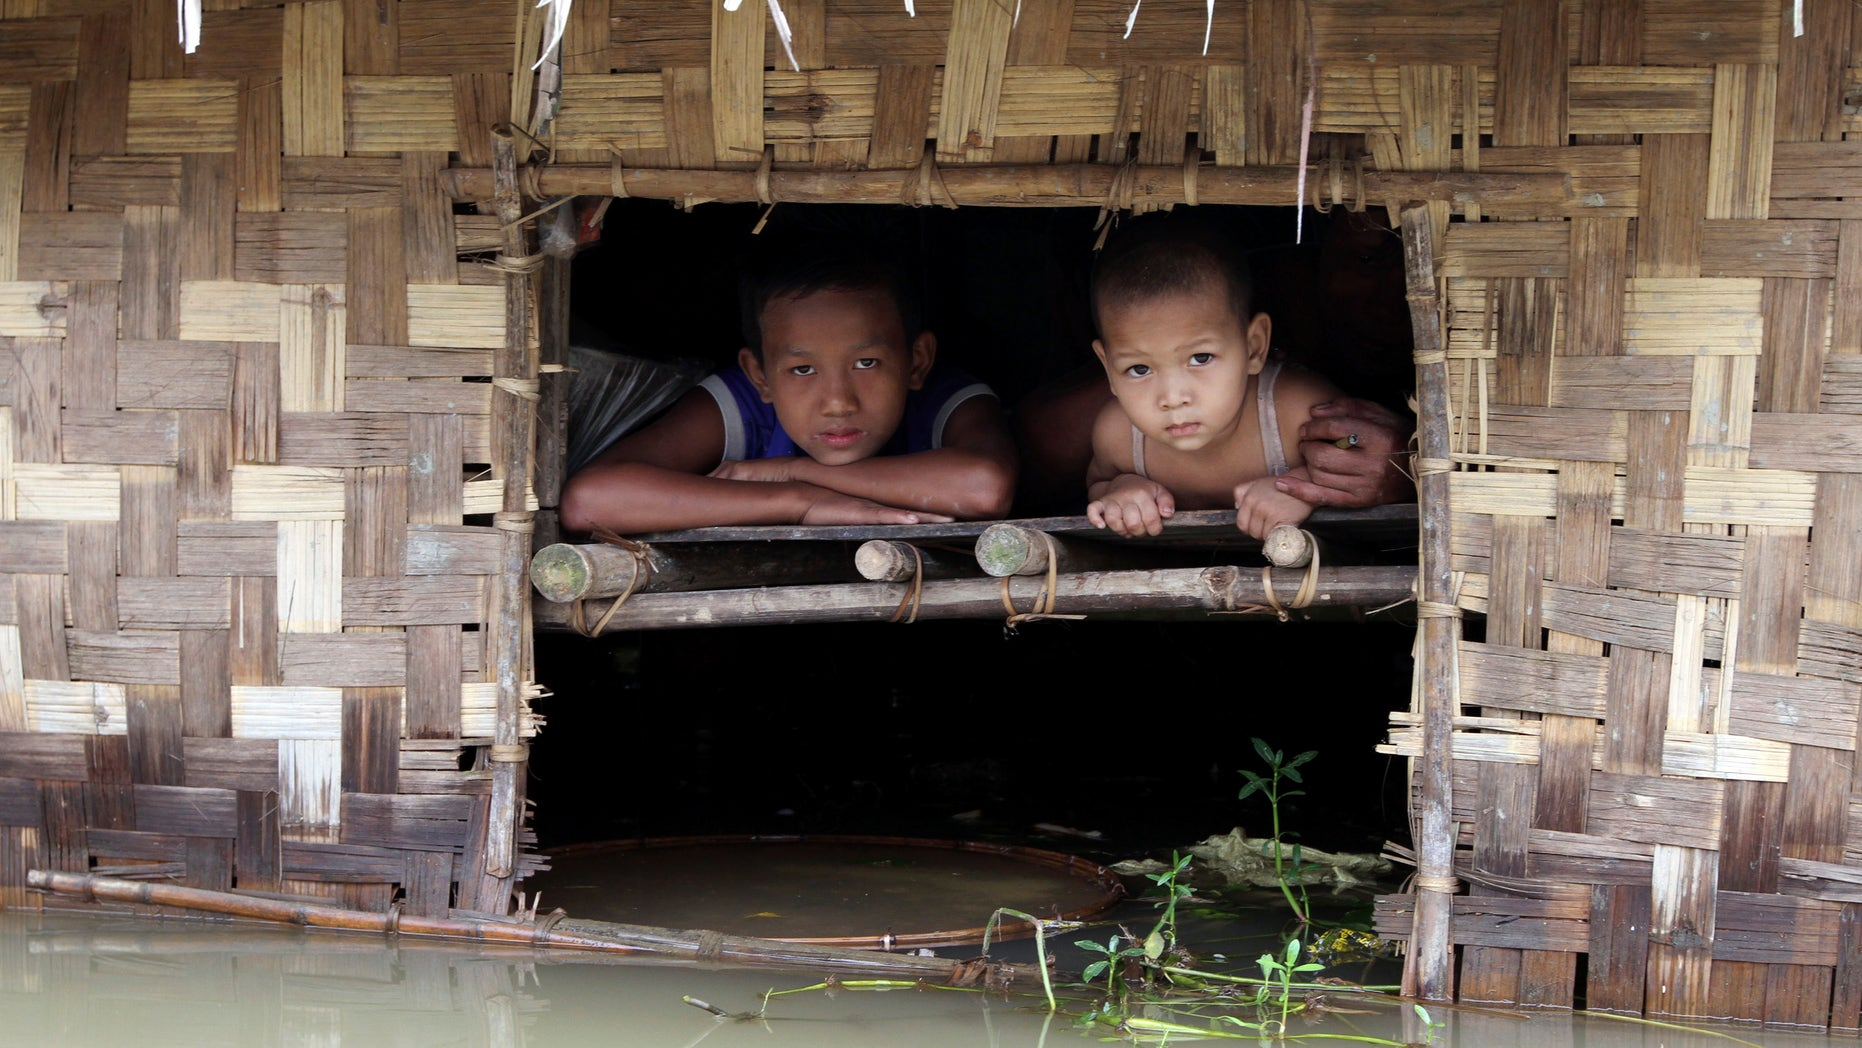 Myanmar officials say 85,000 people forced to flee after